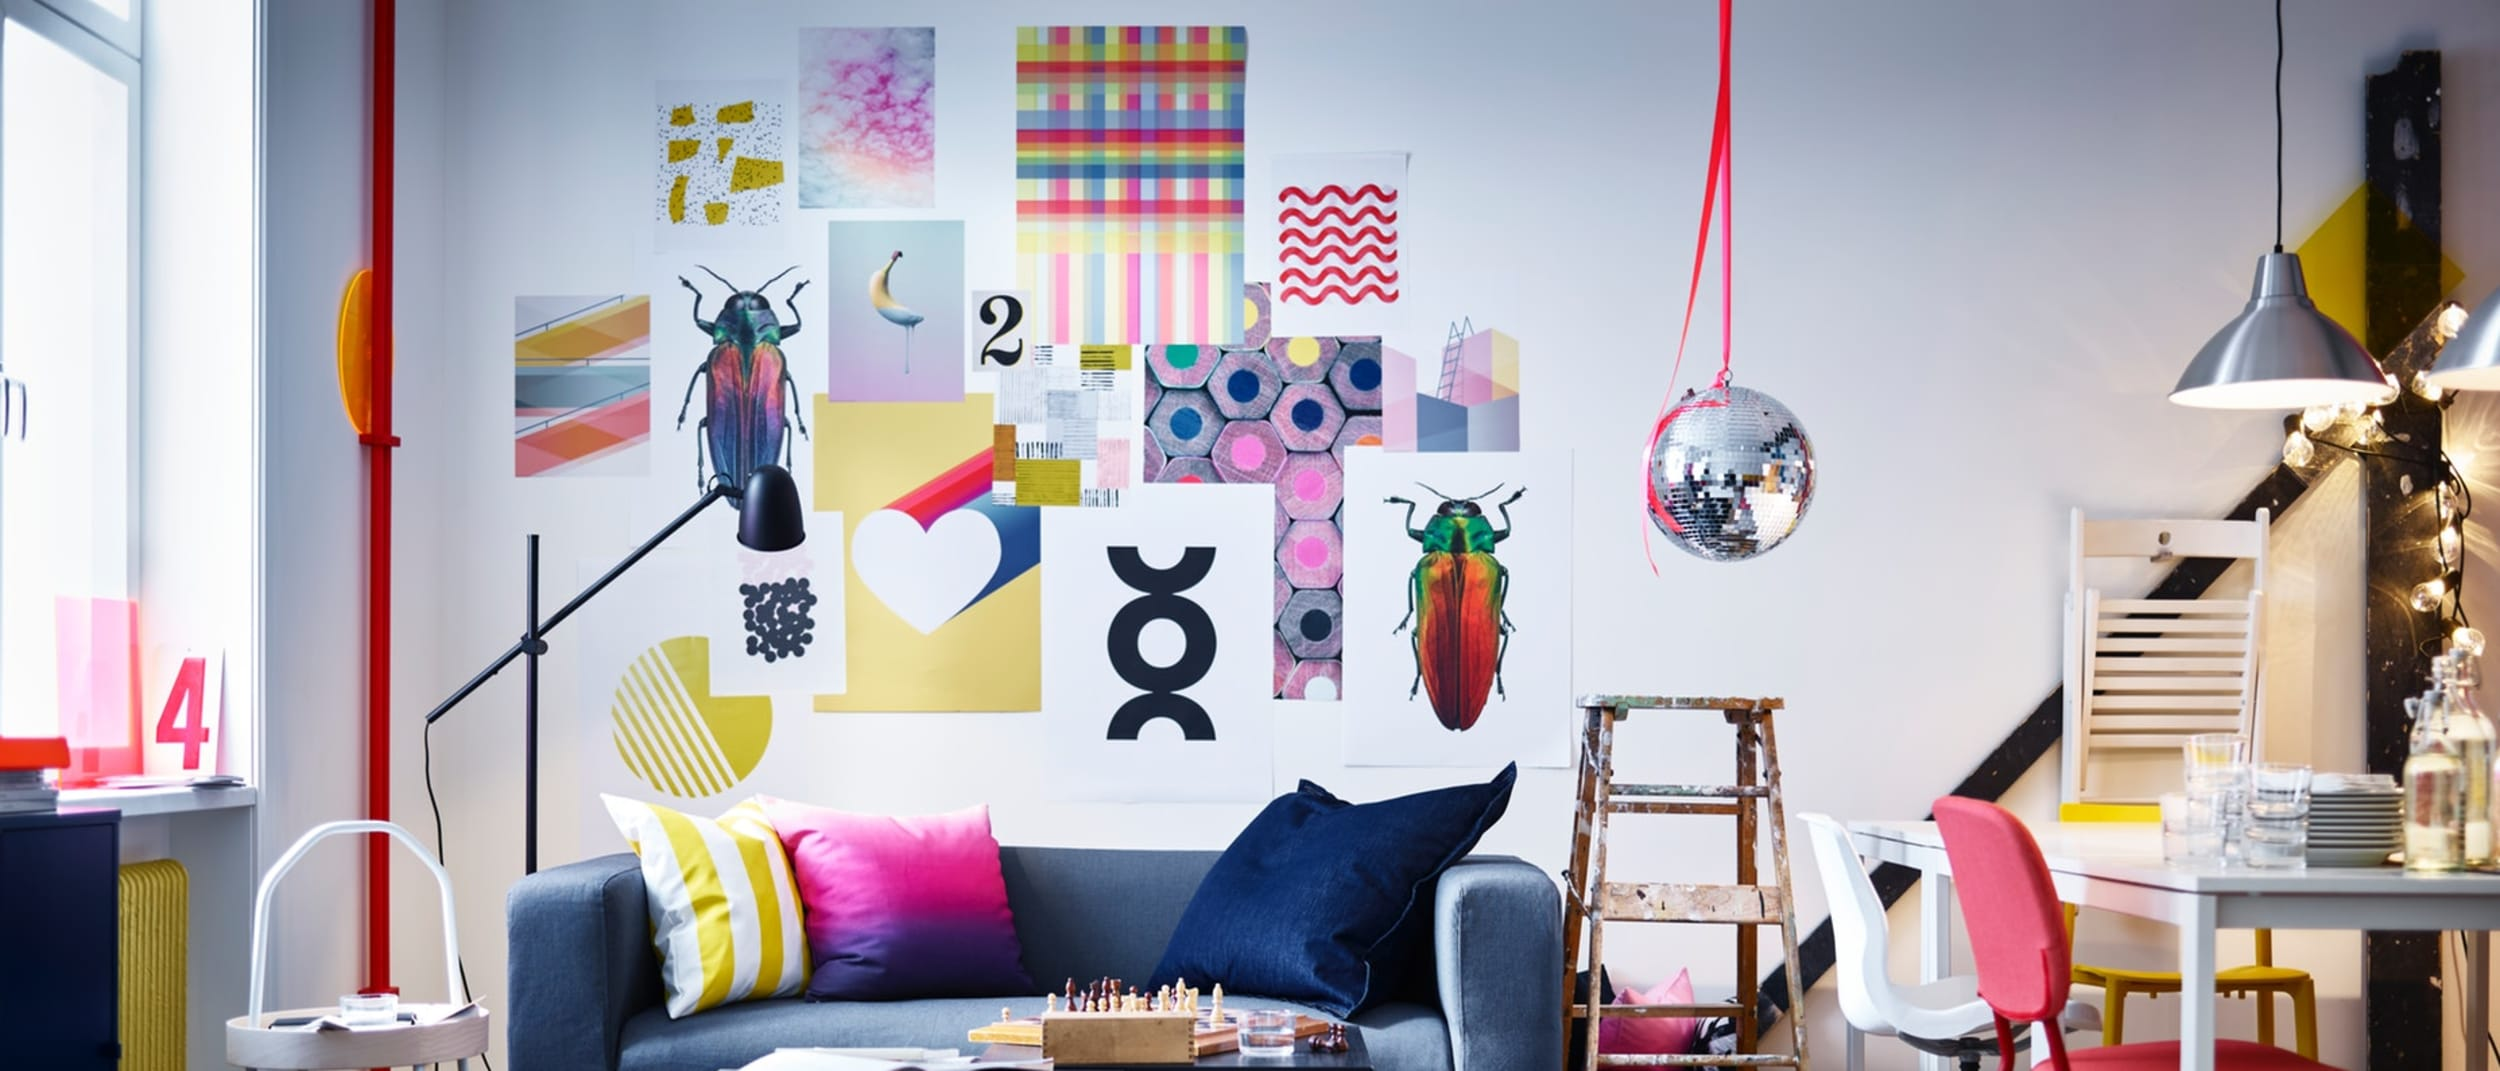 The makeover of the IKEA catalogue